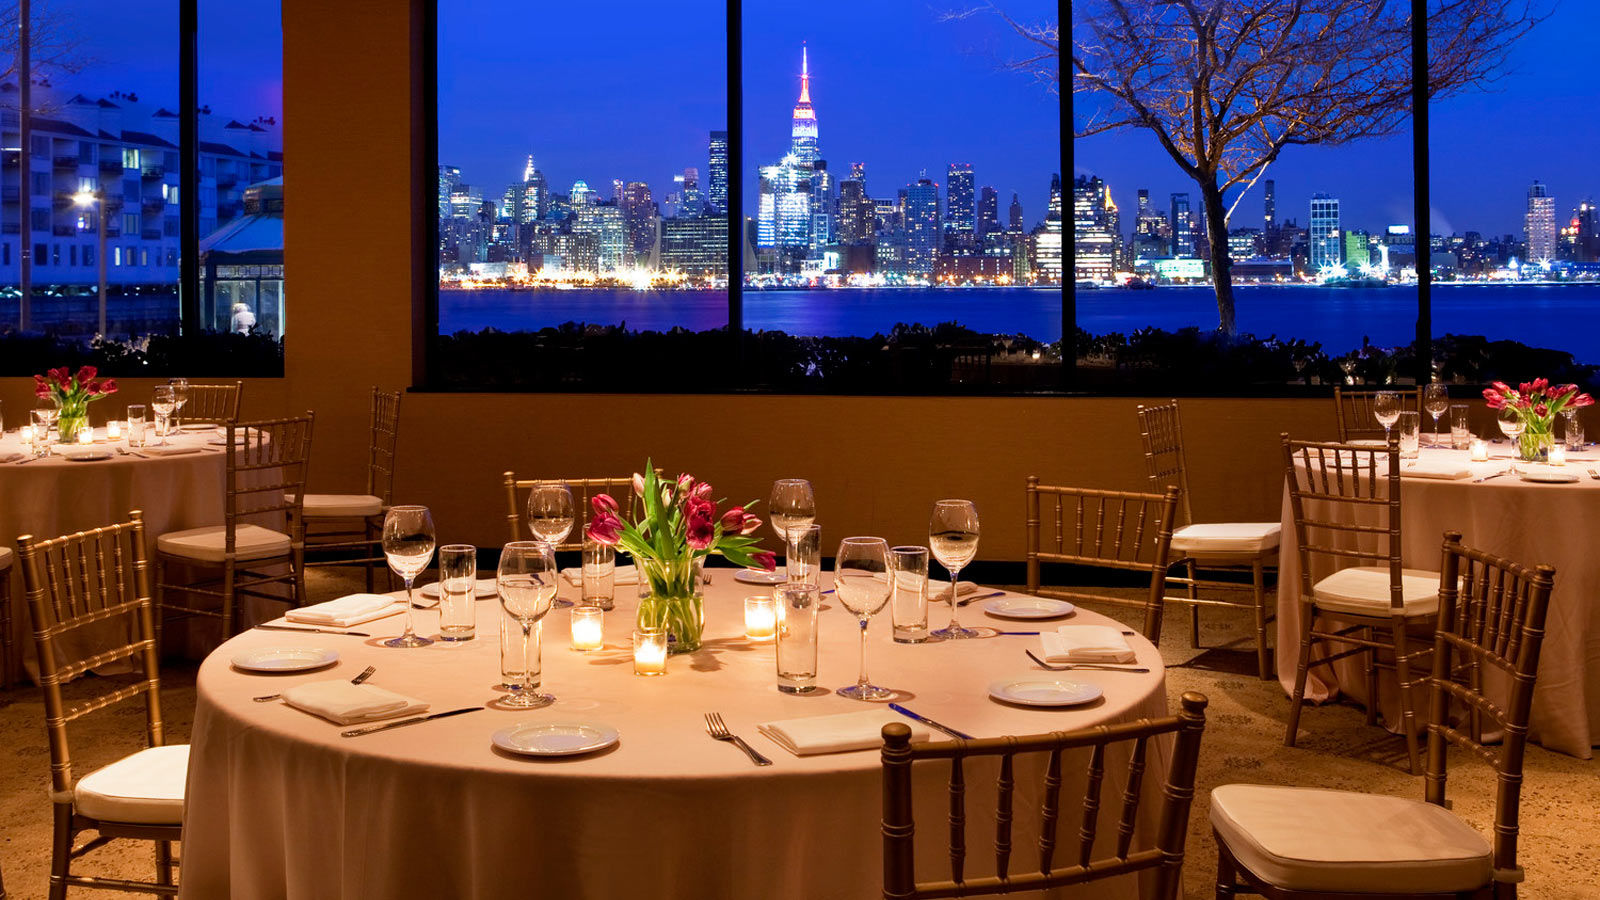 Jersey city wedding venues sheraton lincoln harbor hotel for Small private wedding venues